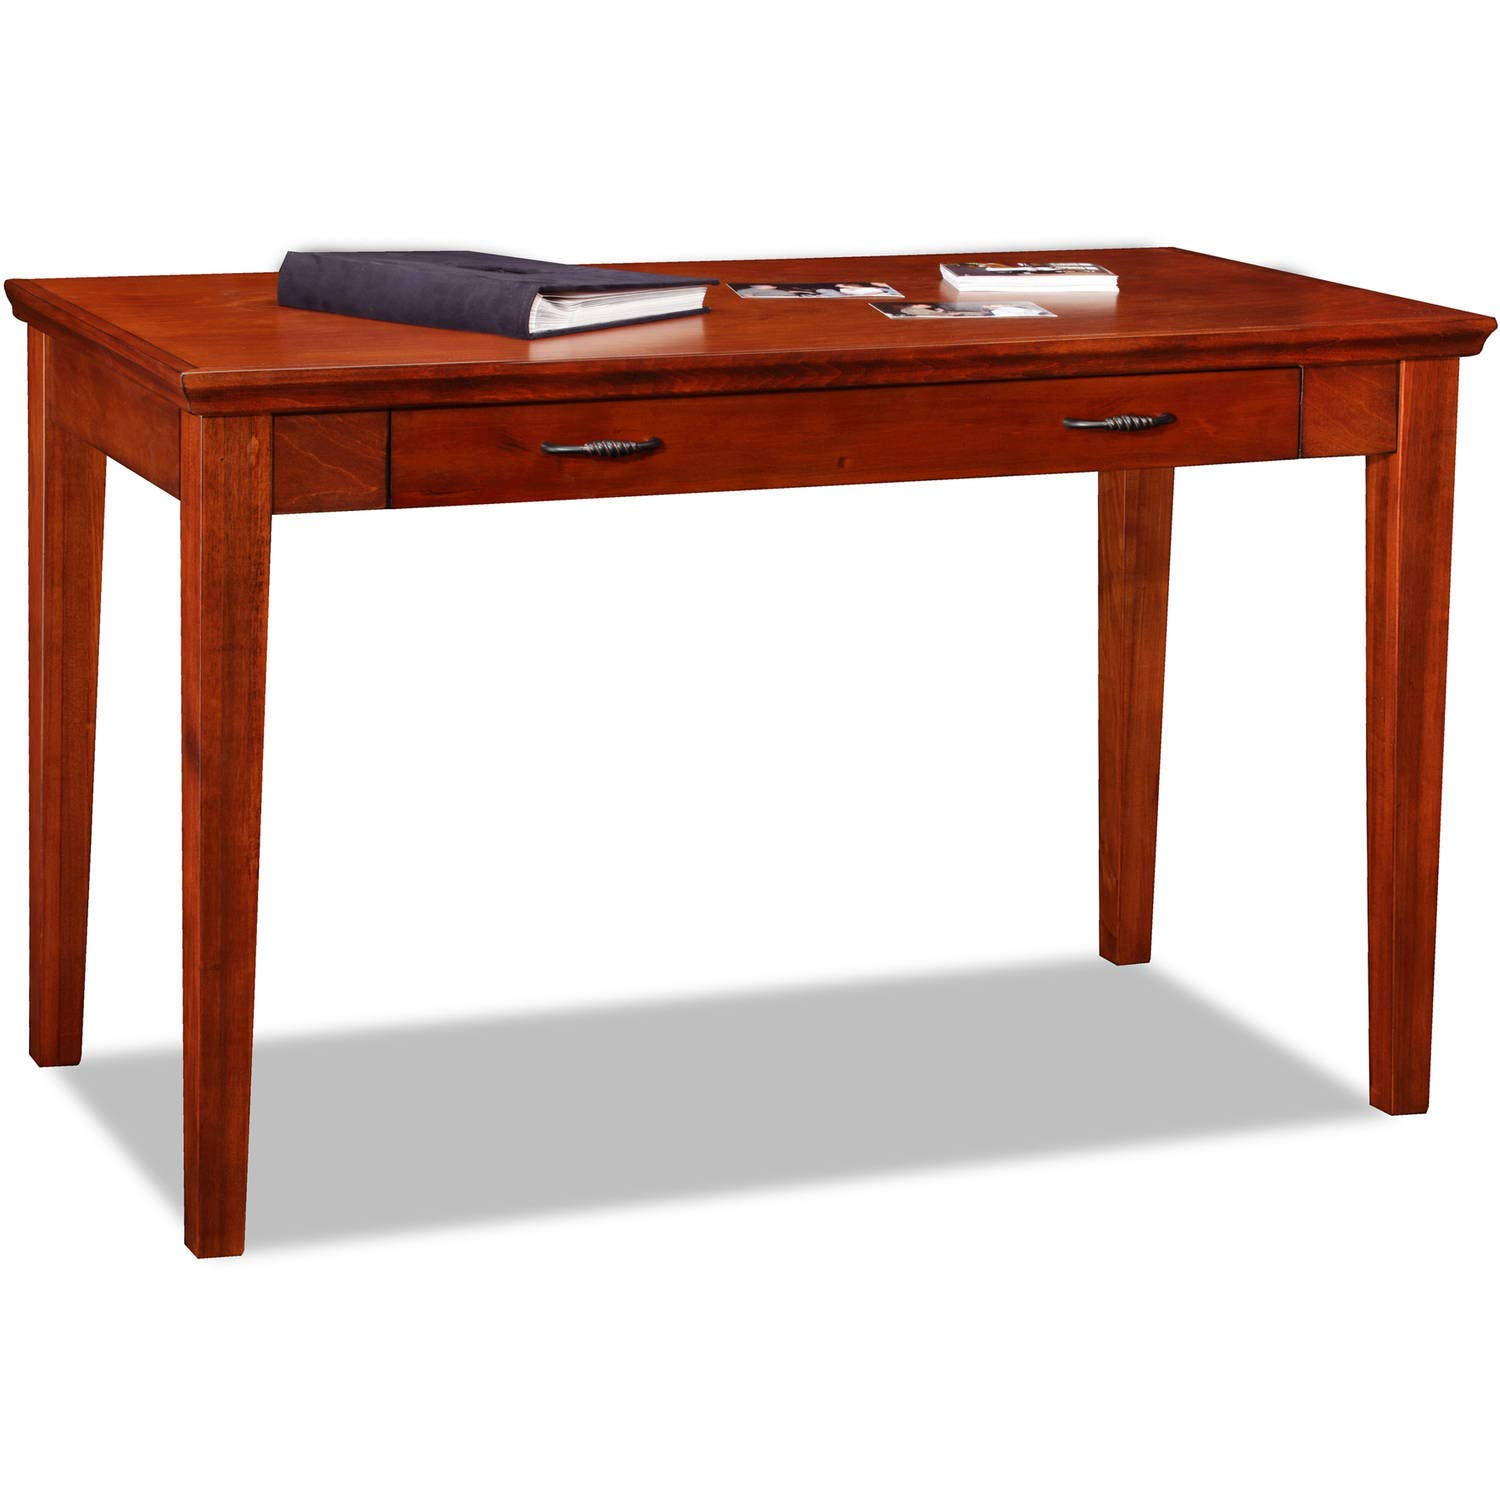 Cherry Laptop Desk, Blackened Hardware, Antiqued Pull, Compact, Small Desk, Drop Down Drawer, Ball Bearing, Office Furniture, Bundle Our Expert Guide Tips Home Arrangement